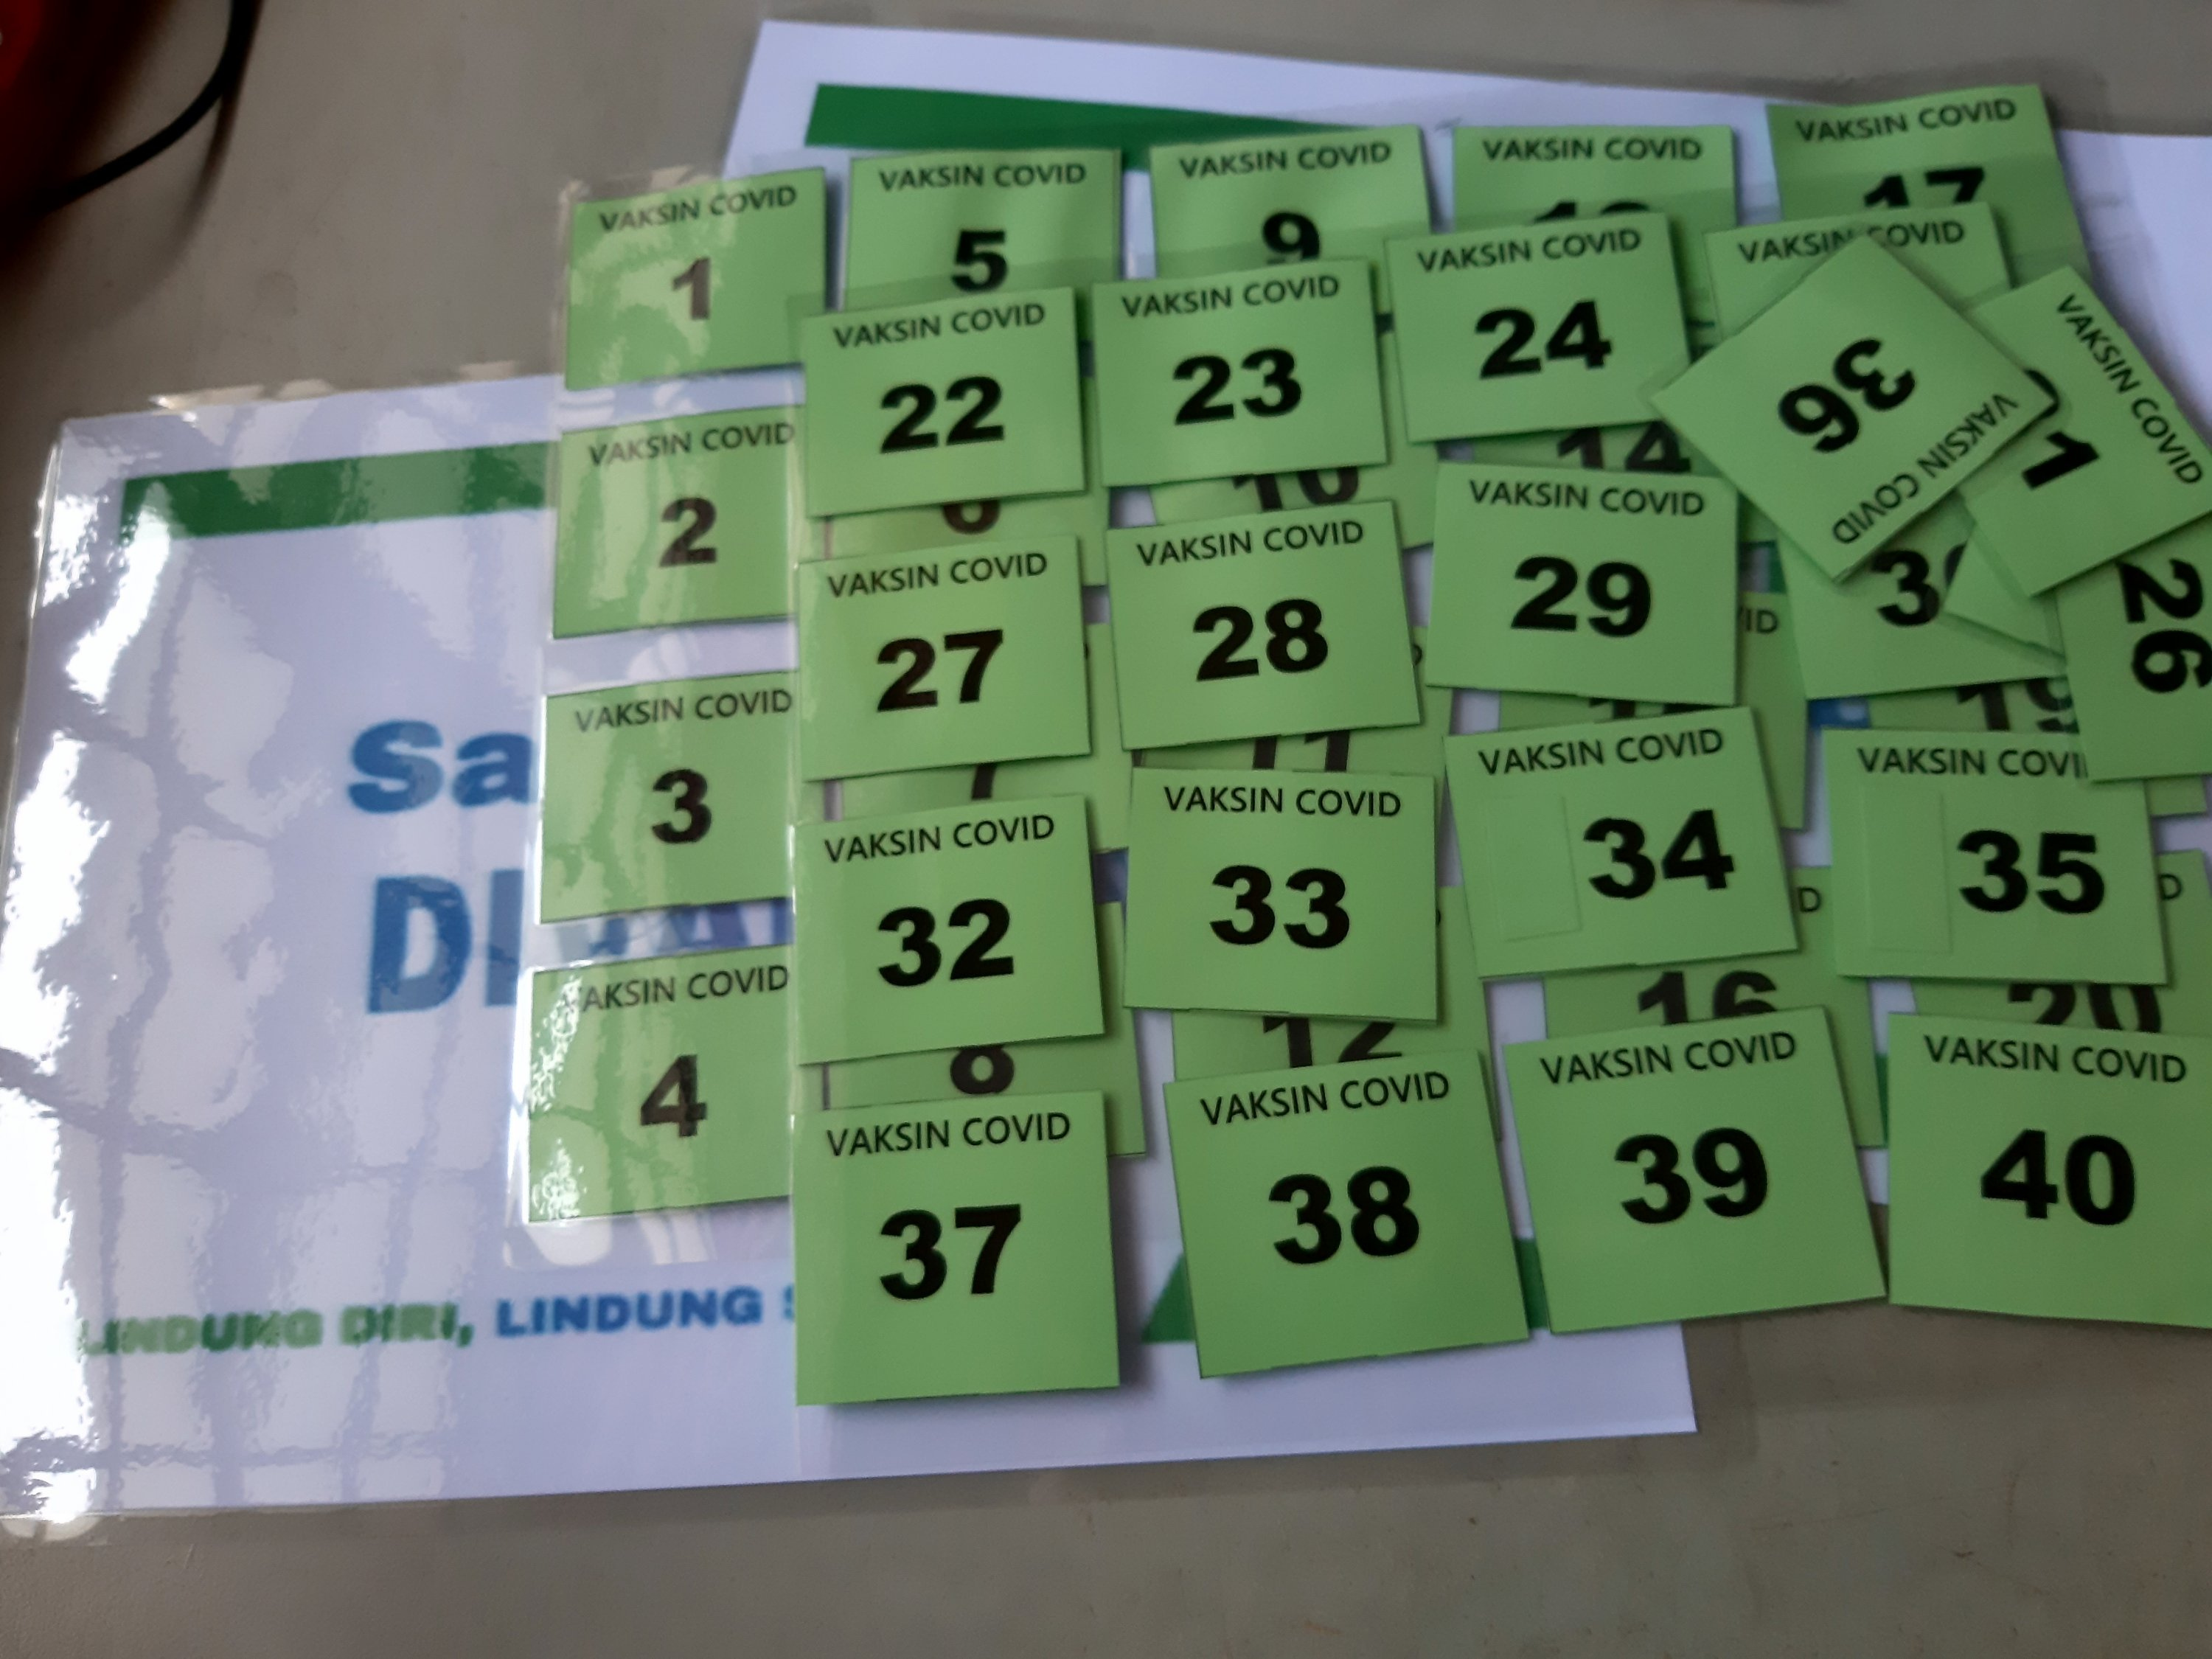 Laminating the numbers